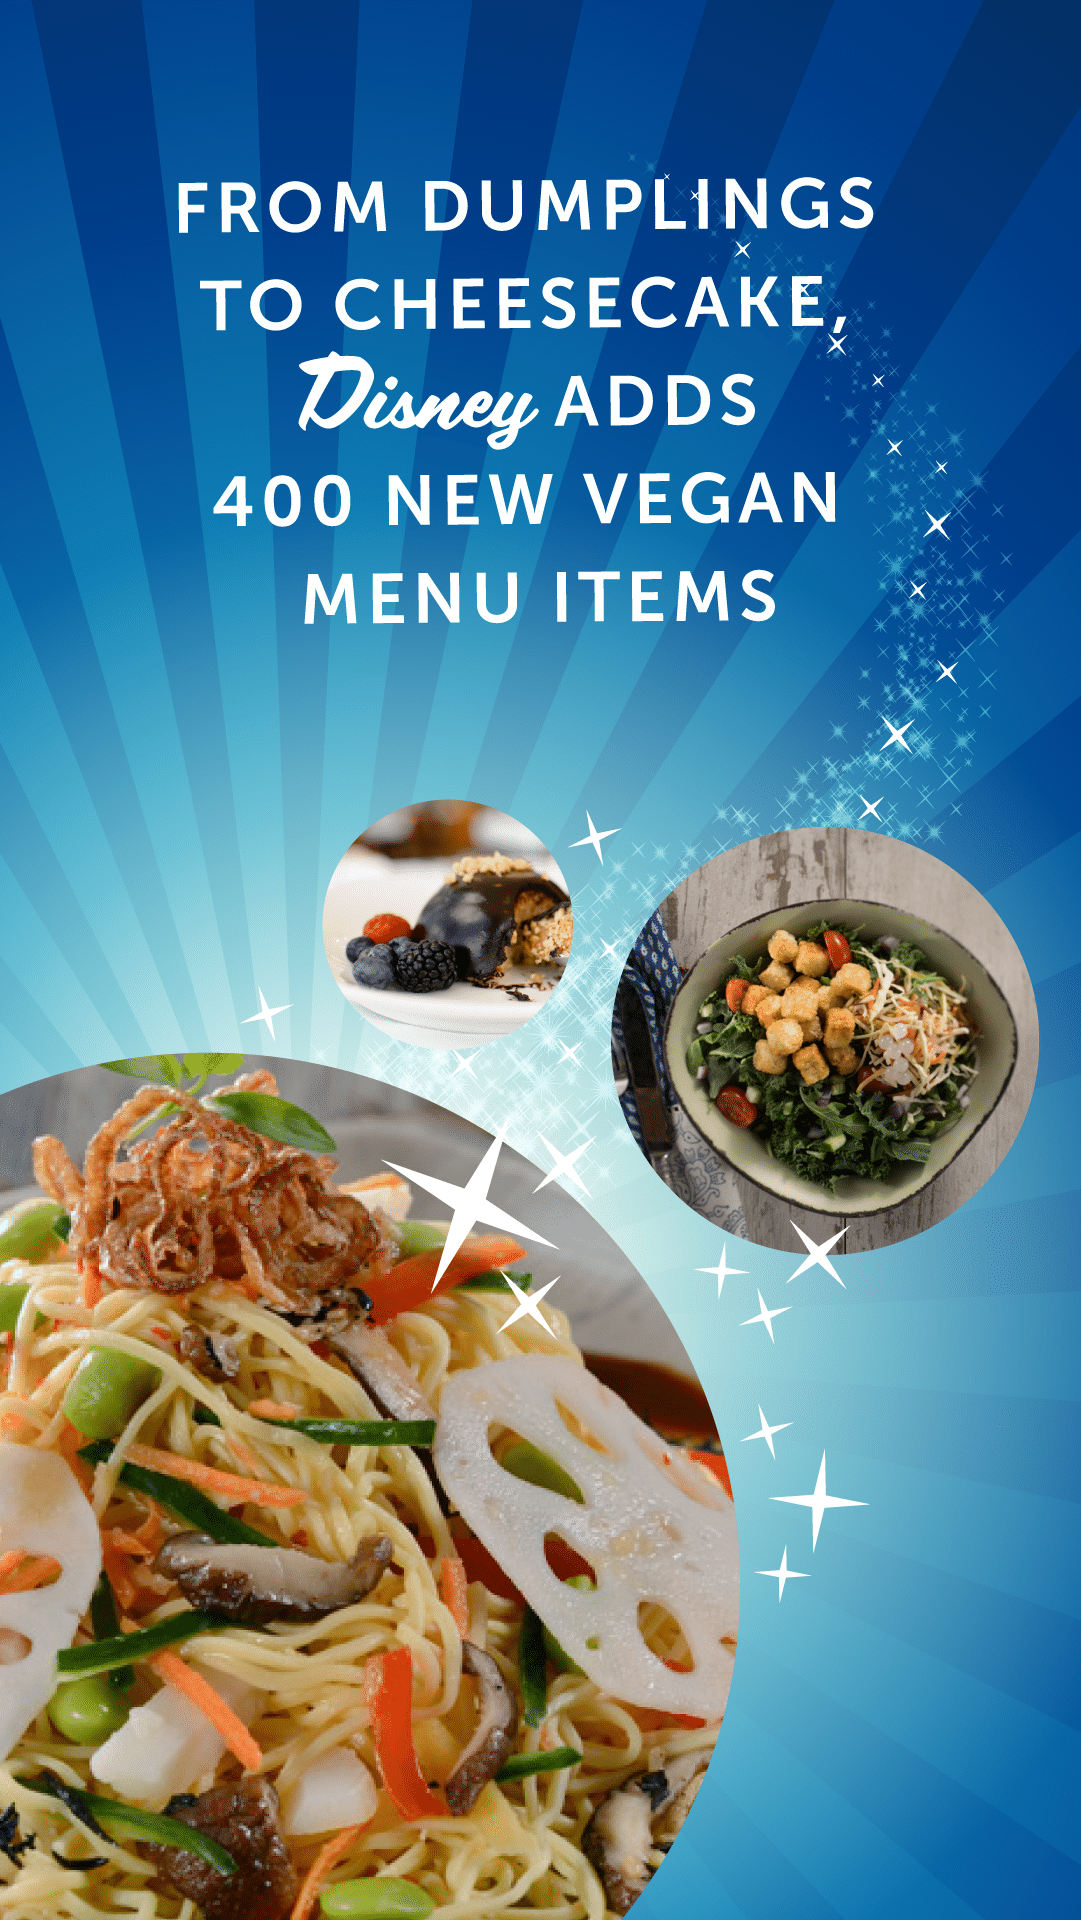 From Dumplings to Cheesecake, Disney Adds 400 New Vegan Menu Items